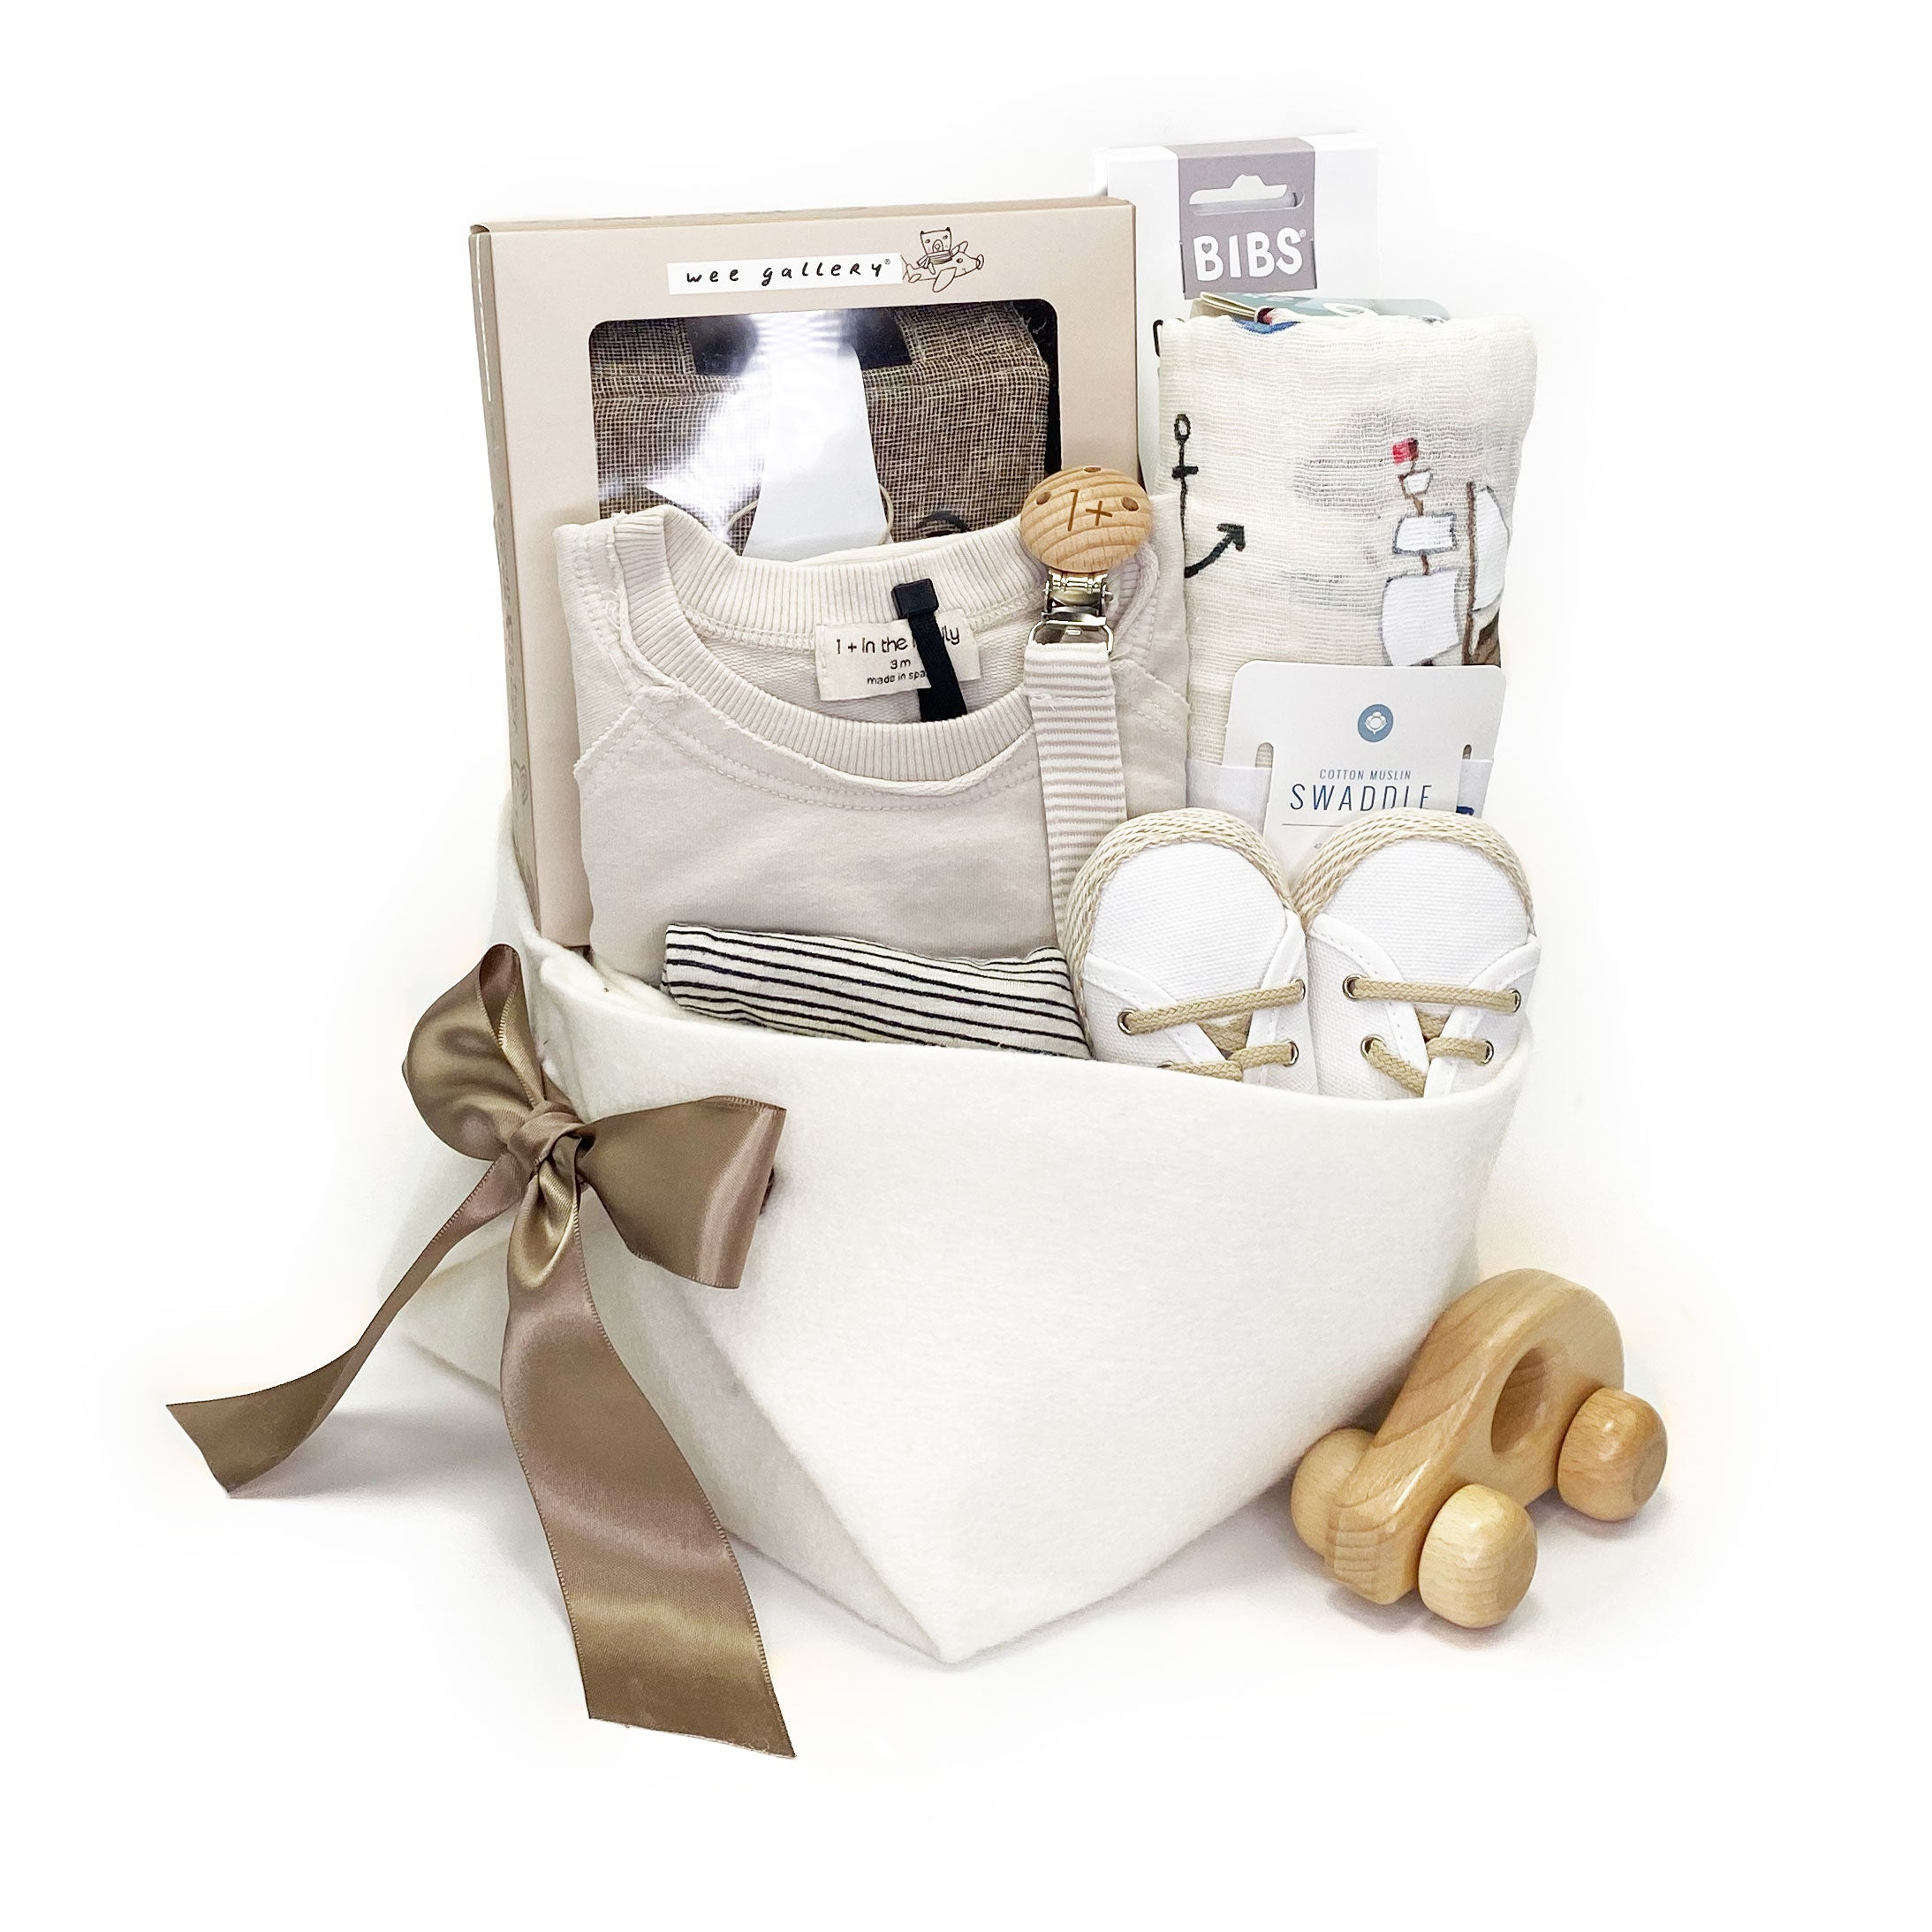 1+ in the Family Baby Gift Basket great Corporate Baby Gift